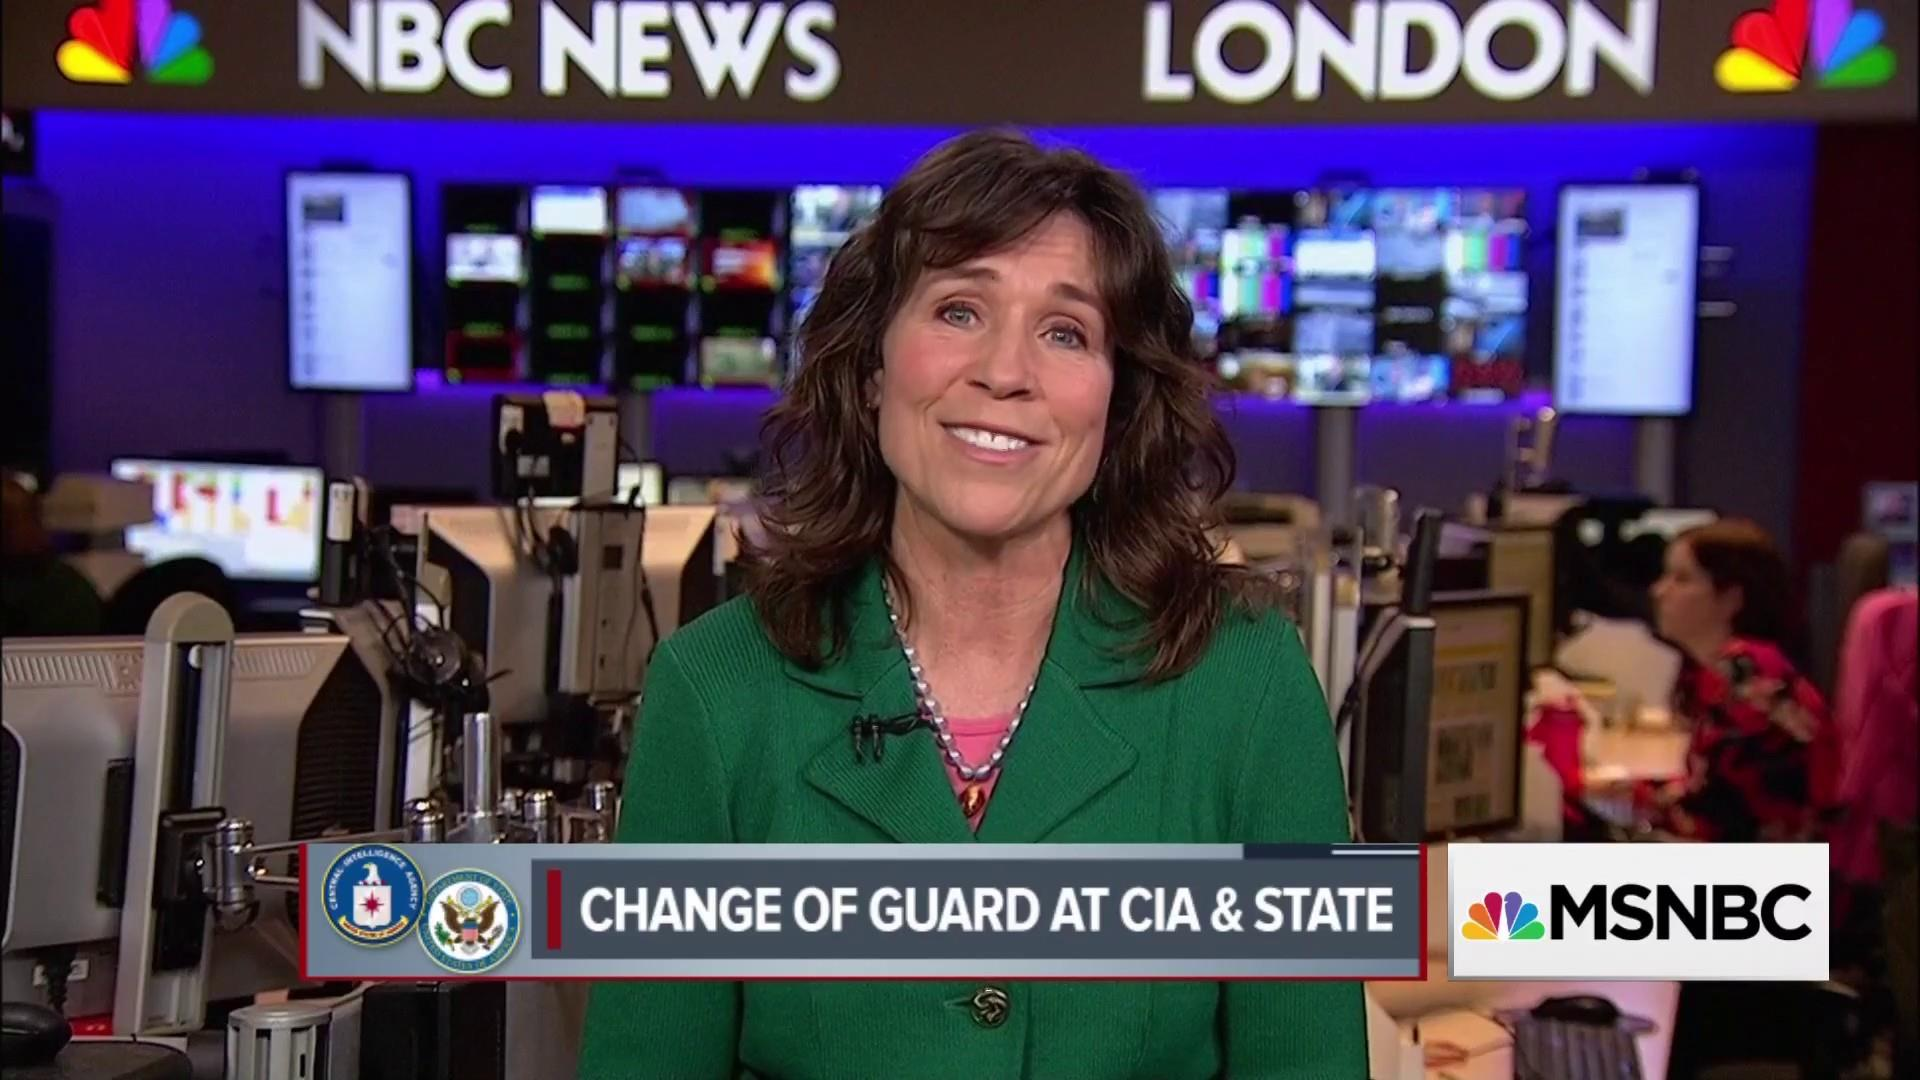 Change of Guard at CIA & State